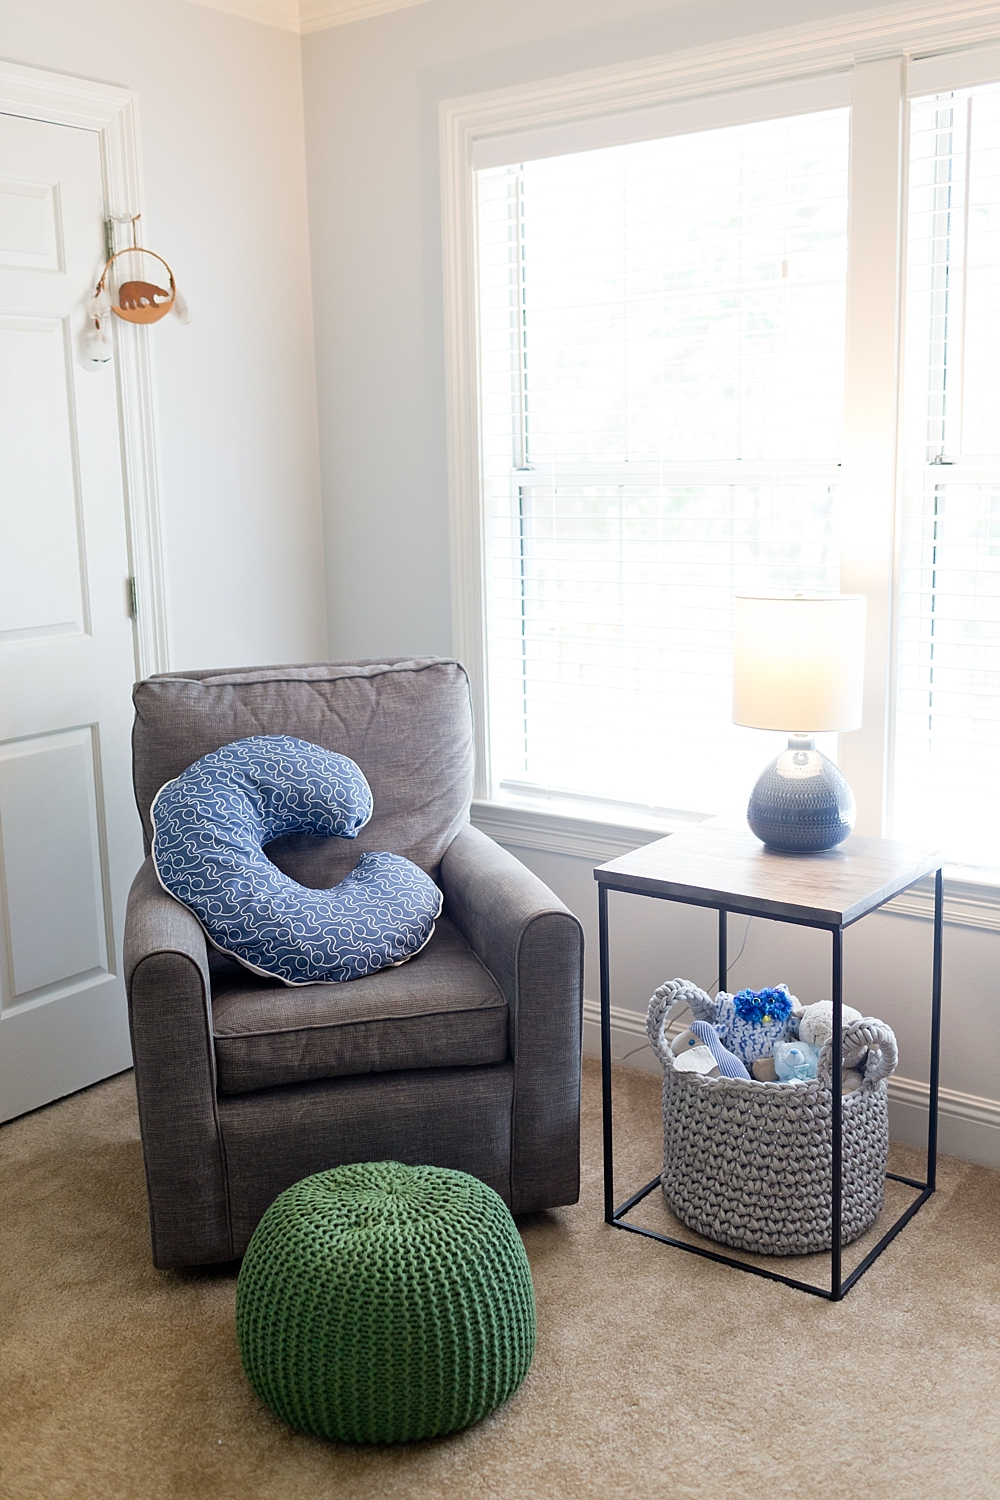 nursing glider, bobby pillow, and green pouf in baby boy's nursery